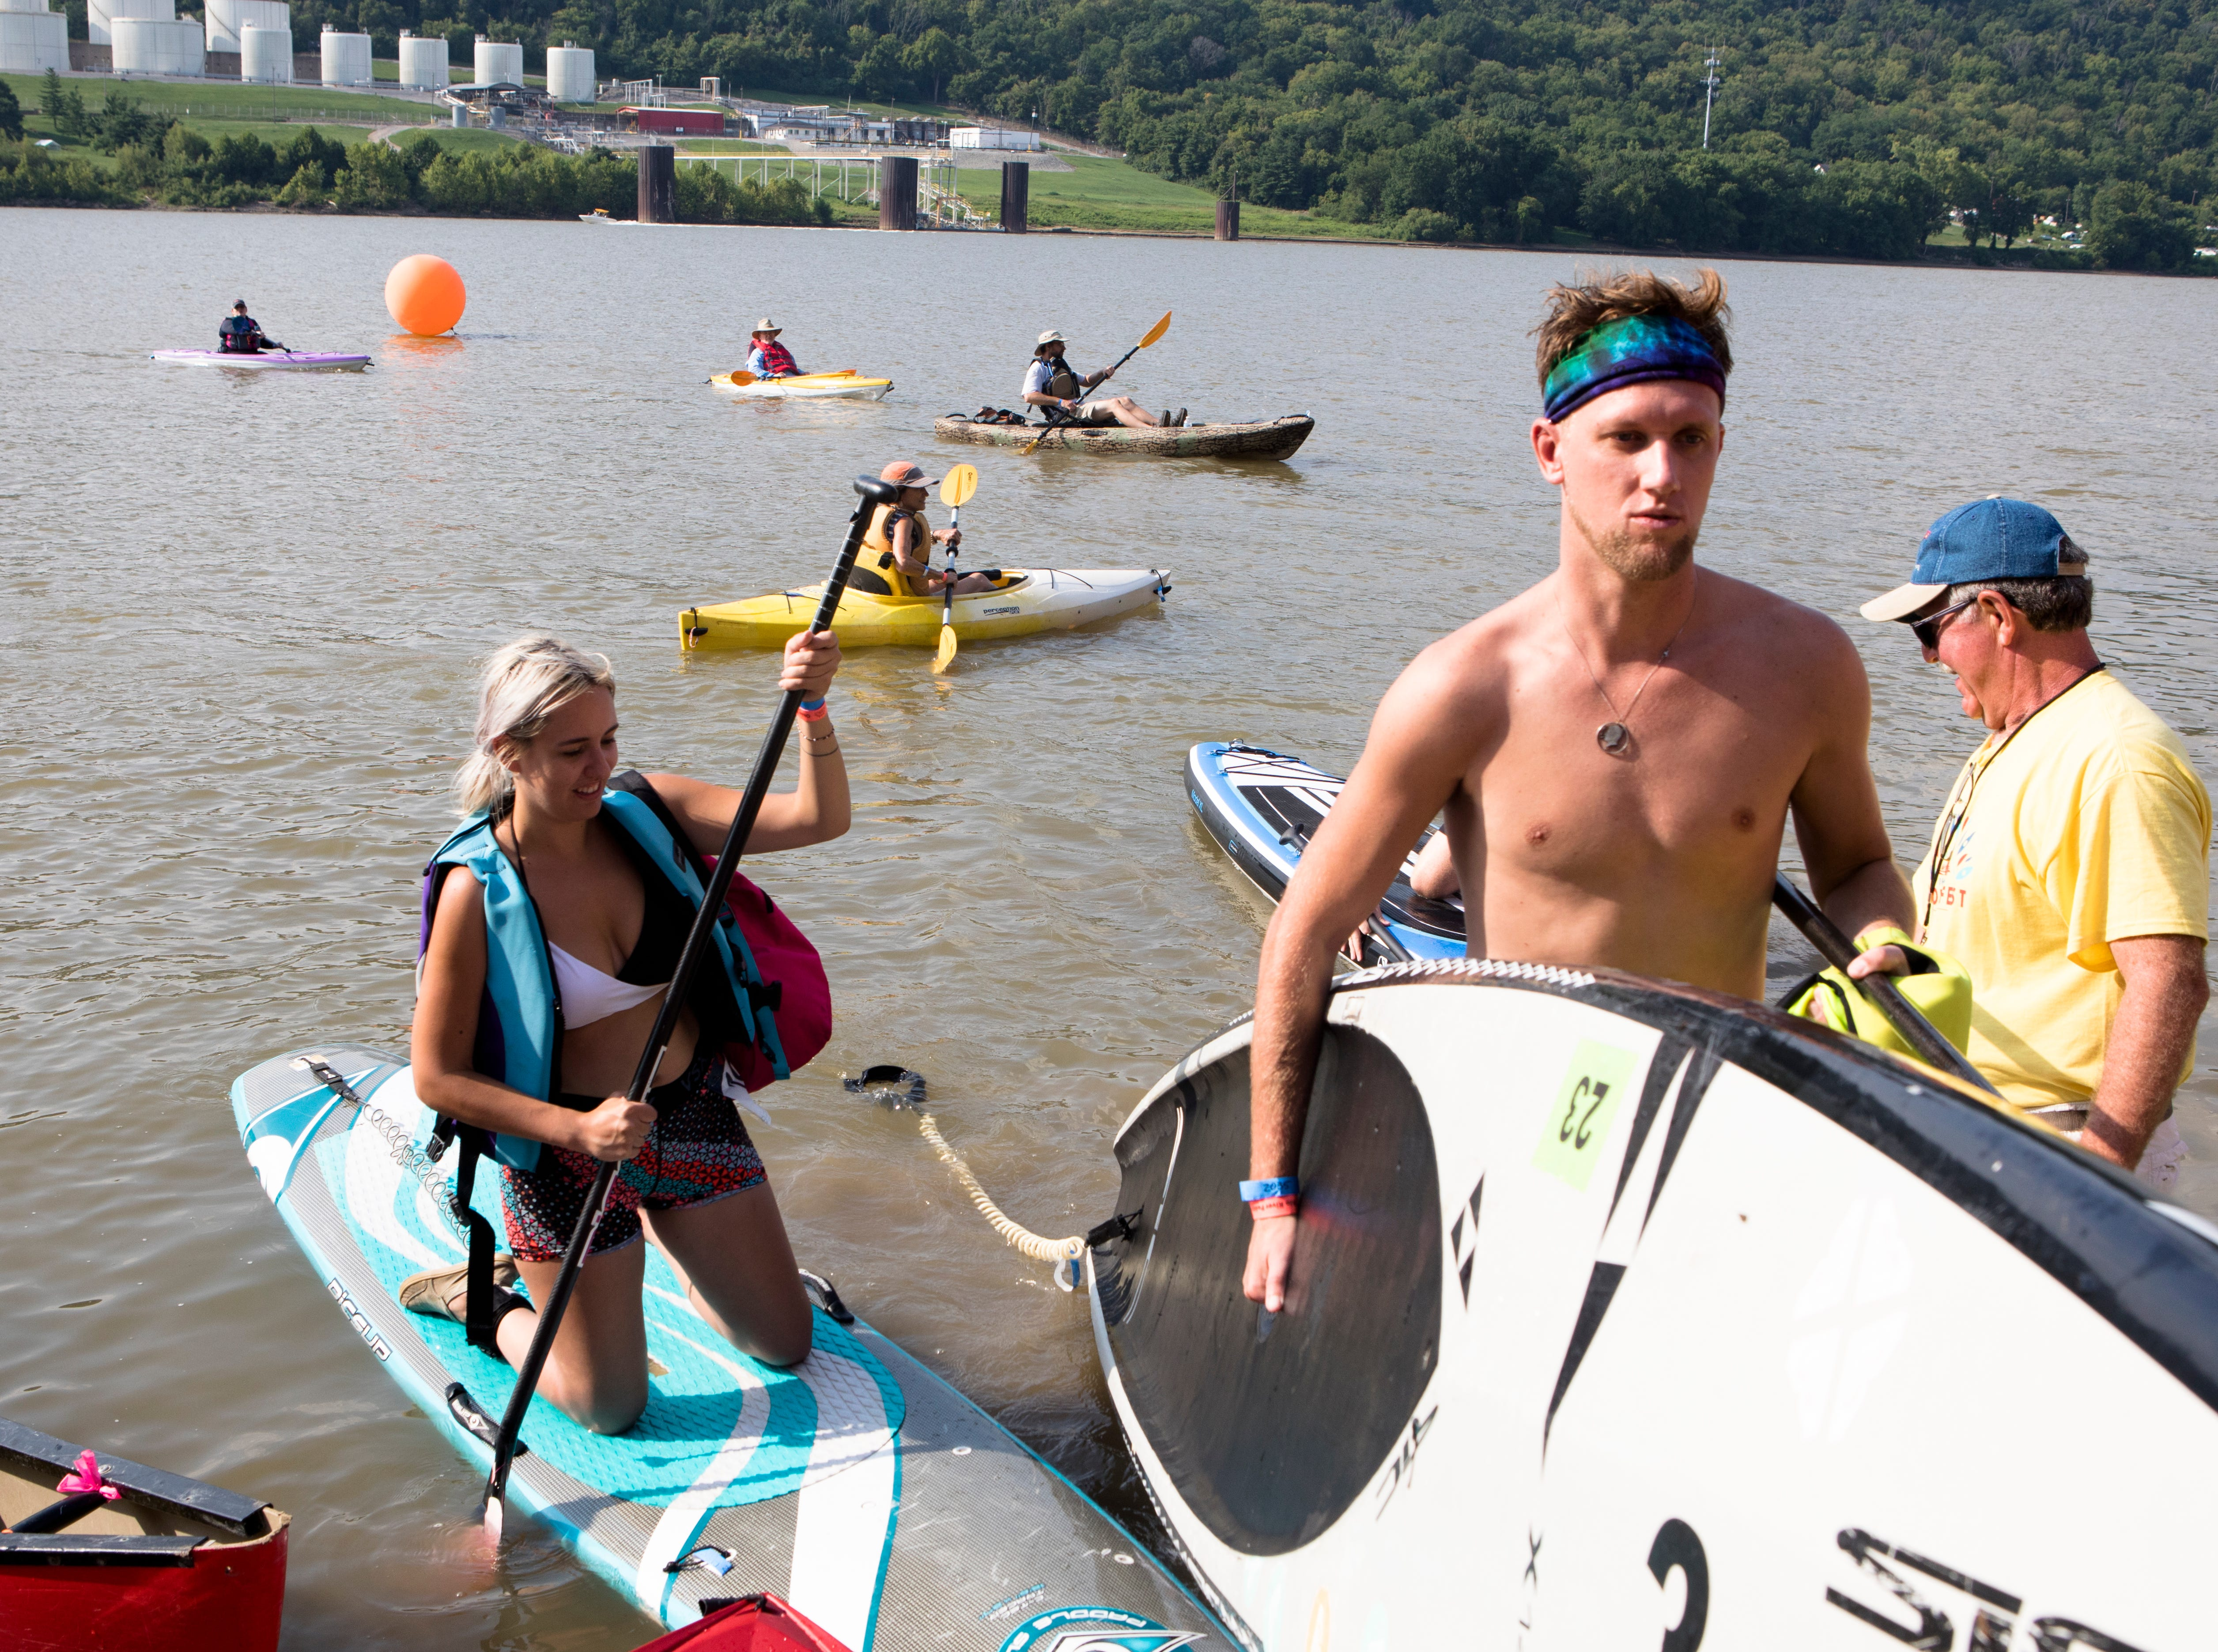 Andrew Hemmelgarn caries a paddle board after completing a 9 mile paddle board down the Ohio River during the 17th annual Ohio River Paddlefest in Cincinnati on Saturday, Aug. 4, 2018.  According to organizers about 2000 people participated in the event which Outdoor Adventure Clubs of Greater Cincinnati raised almost $100,000.